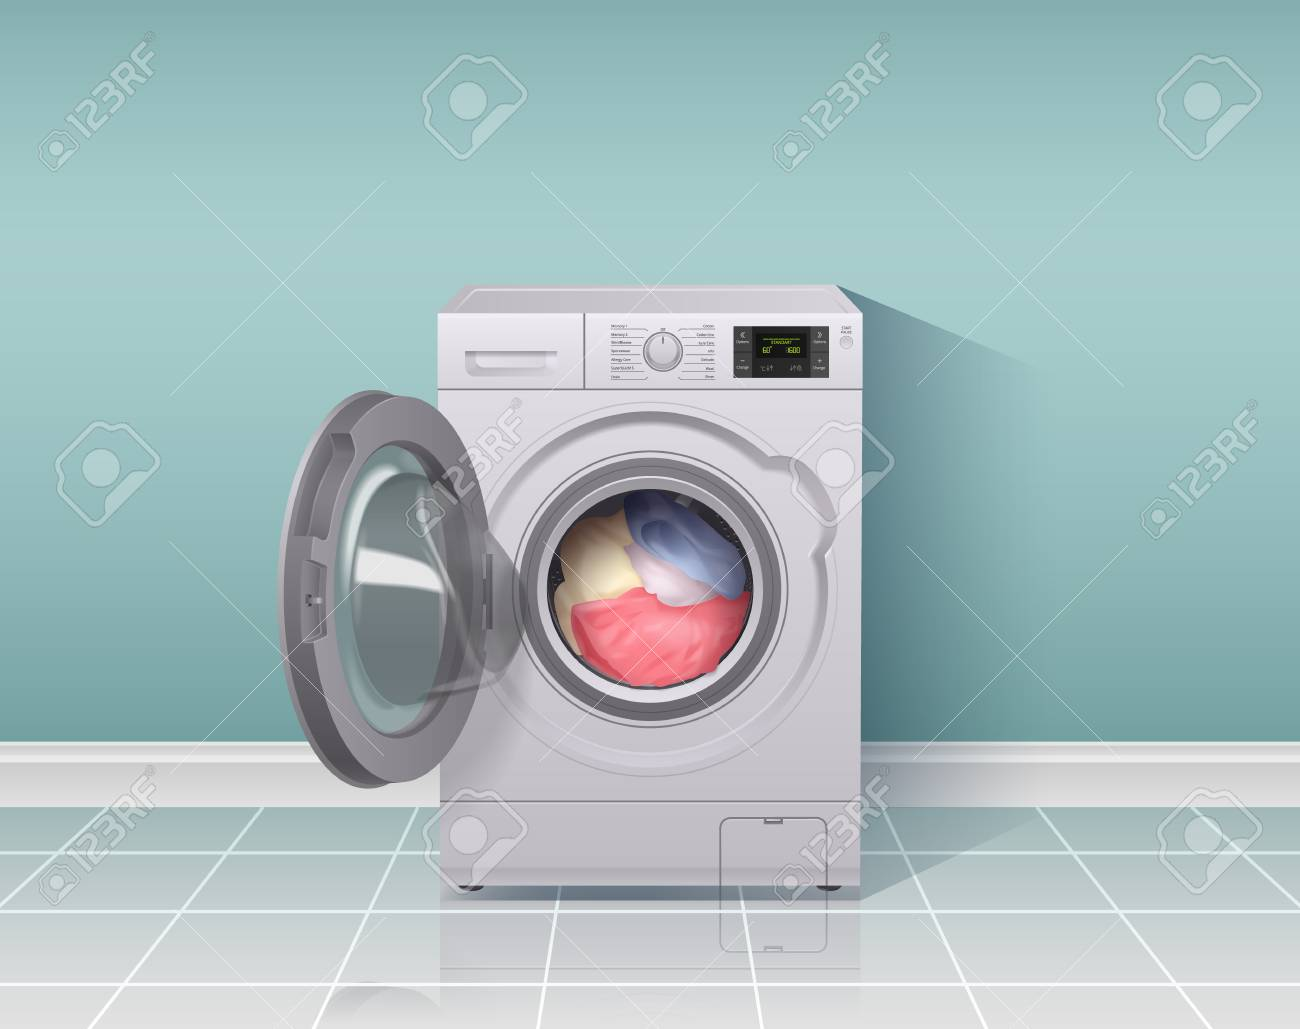 Washing machine realistic composition with housework equipment symbols vector illustration - 119057830